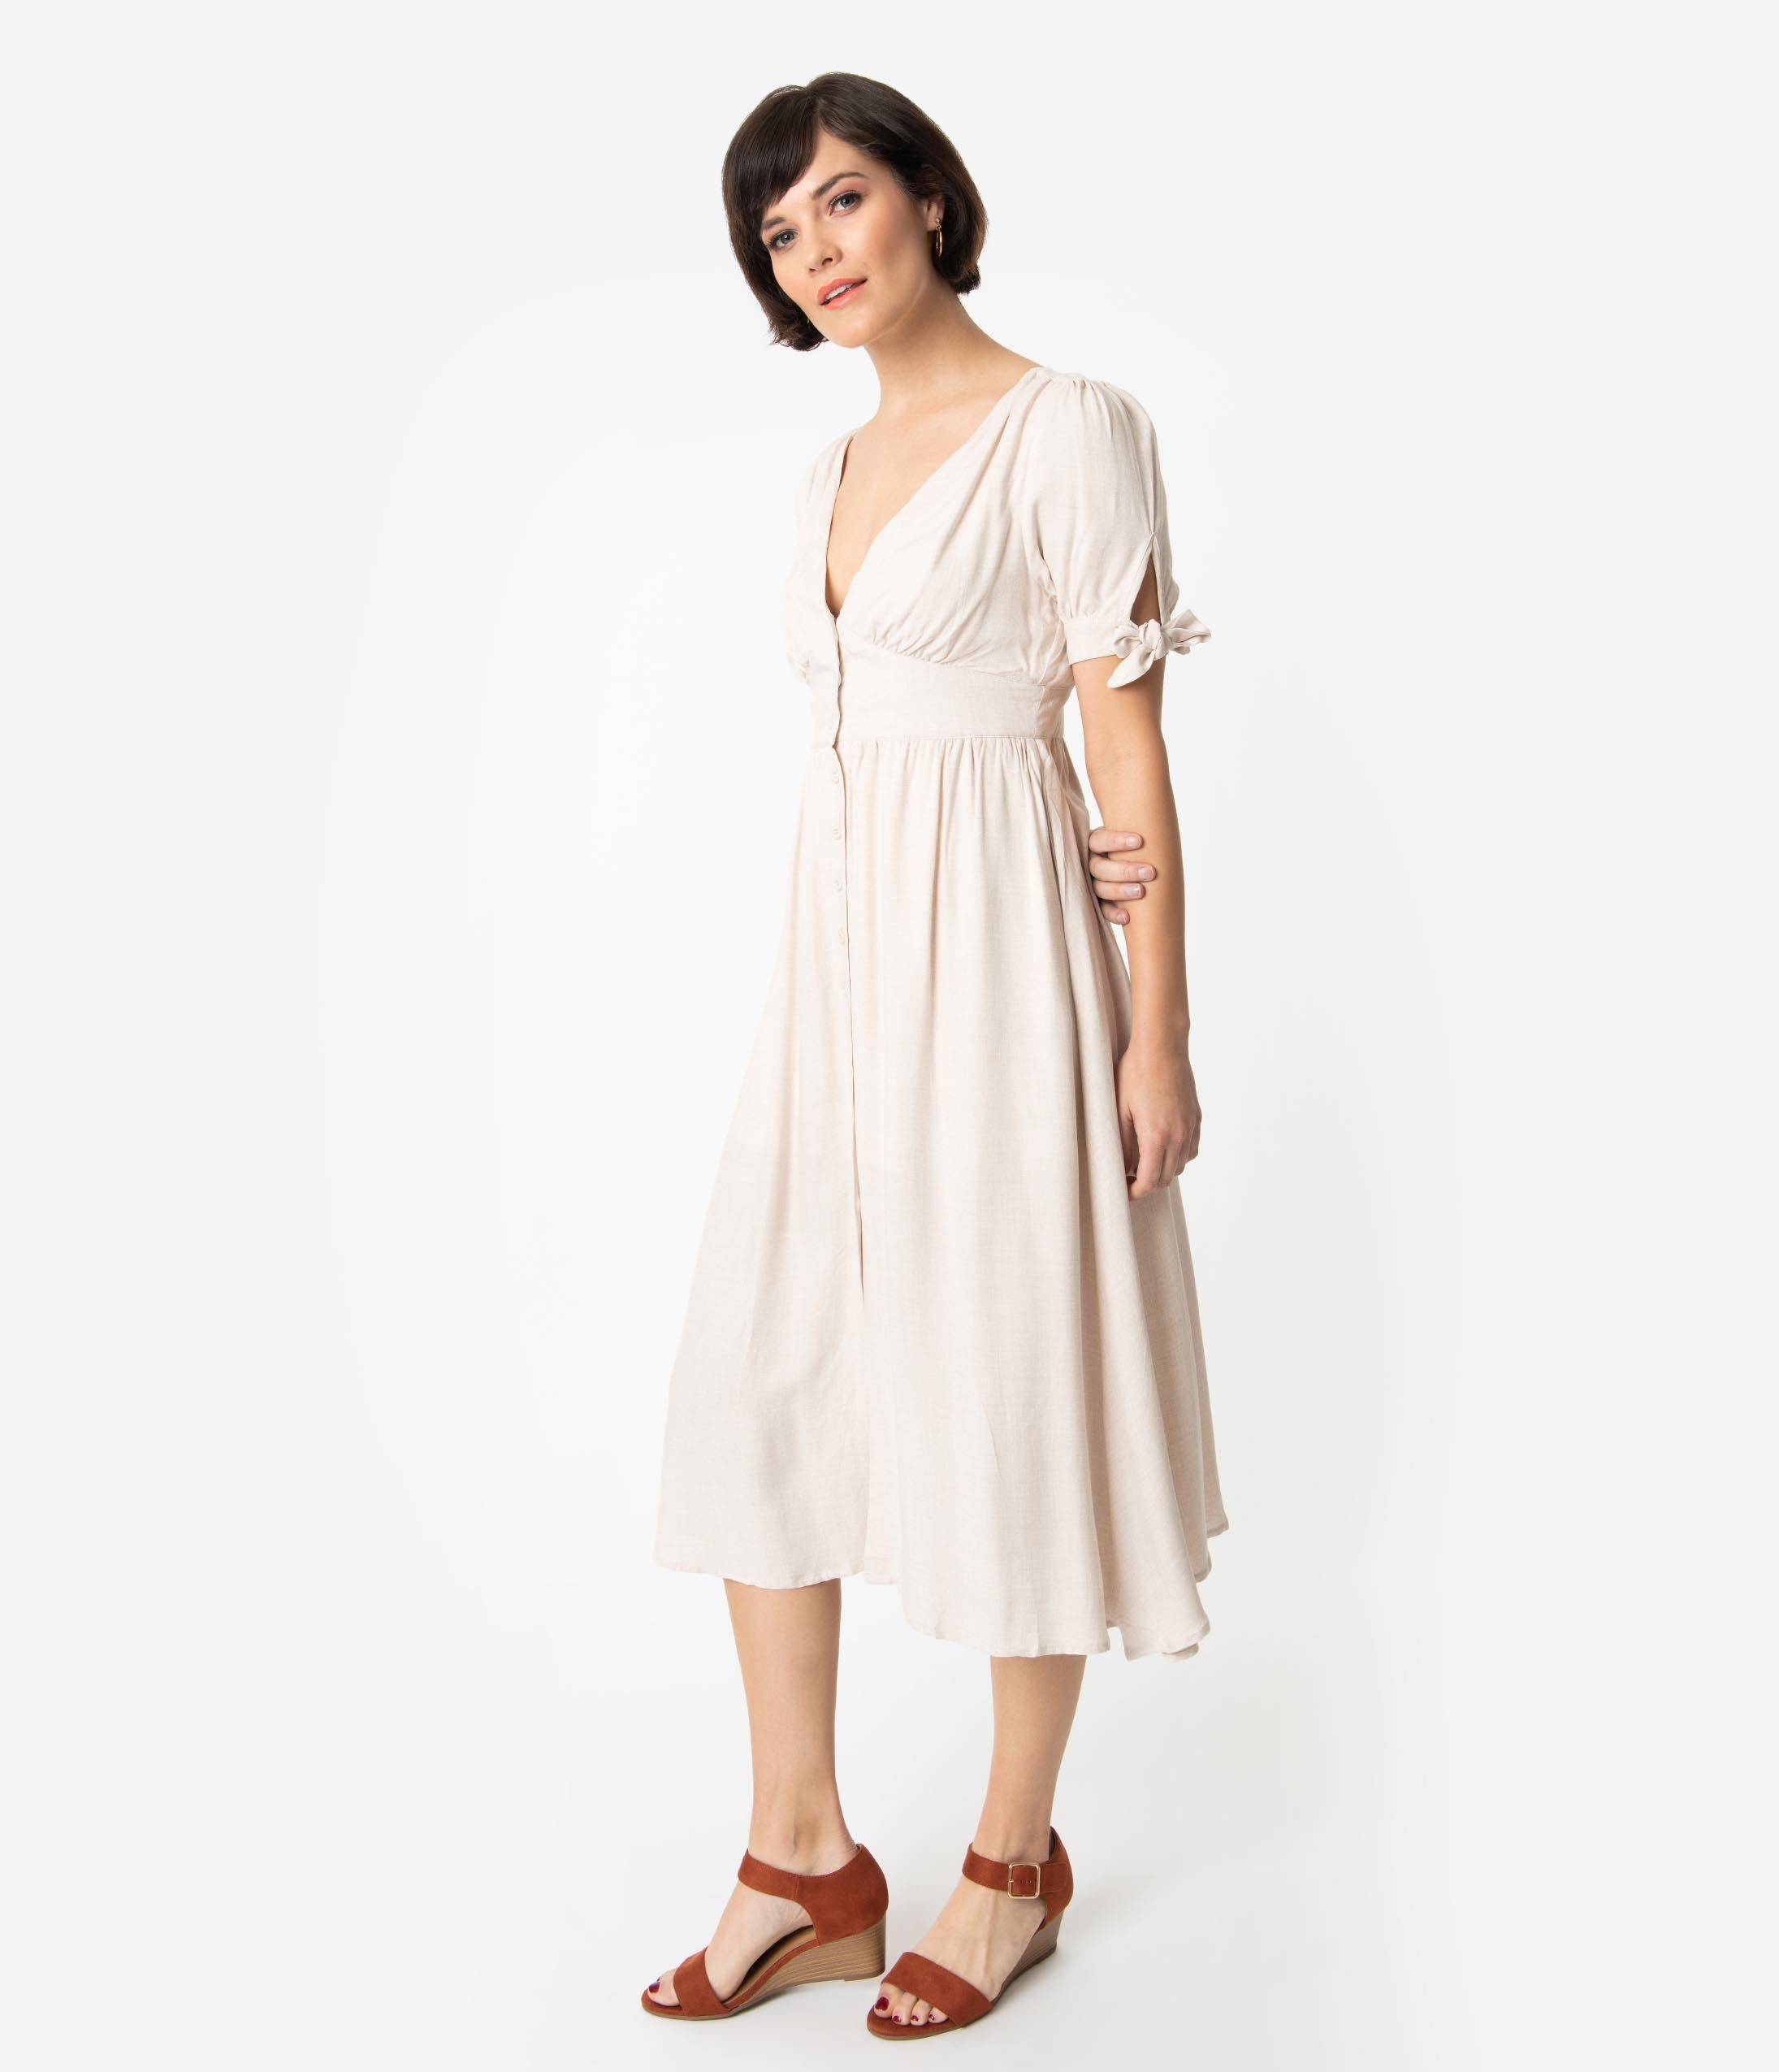 bc3cc5cb746 1930s Style Toasted Oatmeal Woven Short Sleeve Button Up Midi Dress